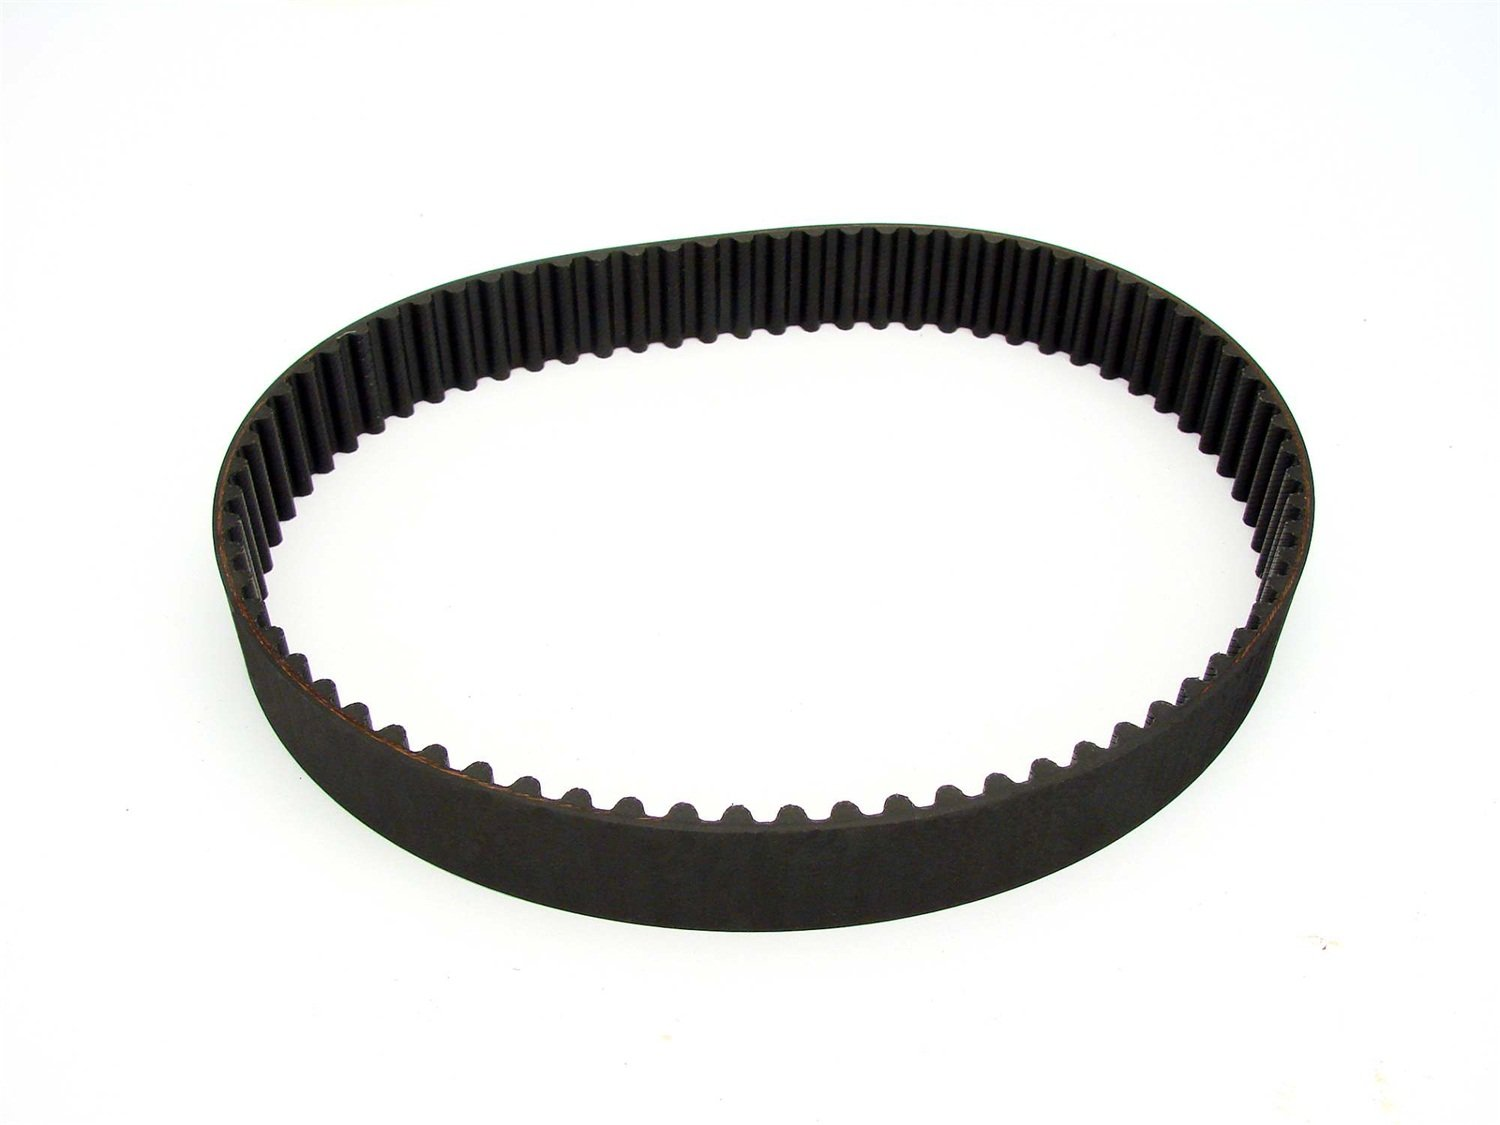 COMP Cams 6100B Belt for 6100 Belt Drive System by Comp Cams